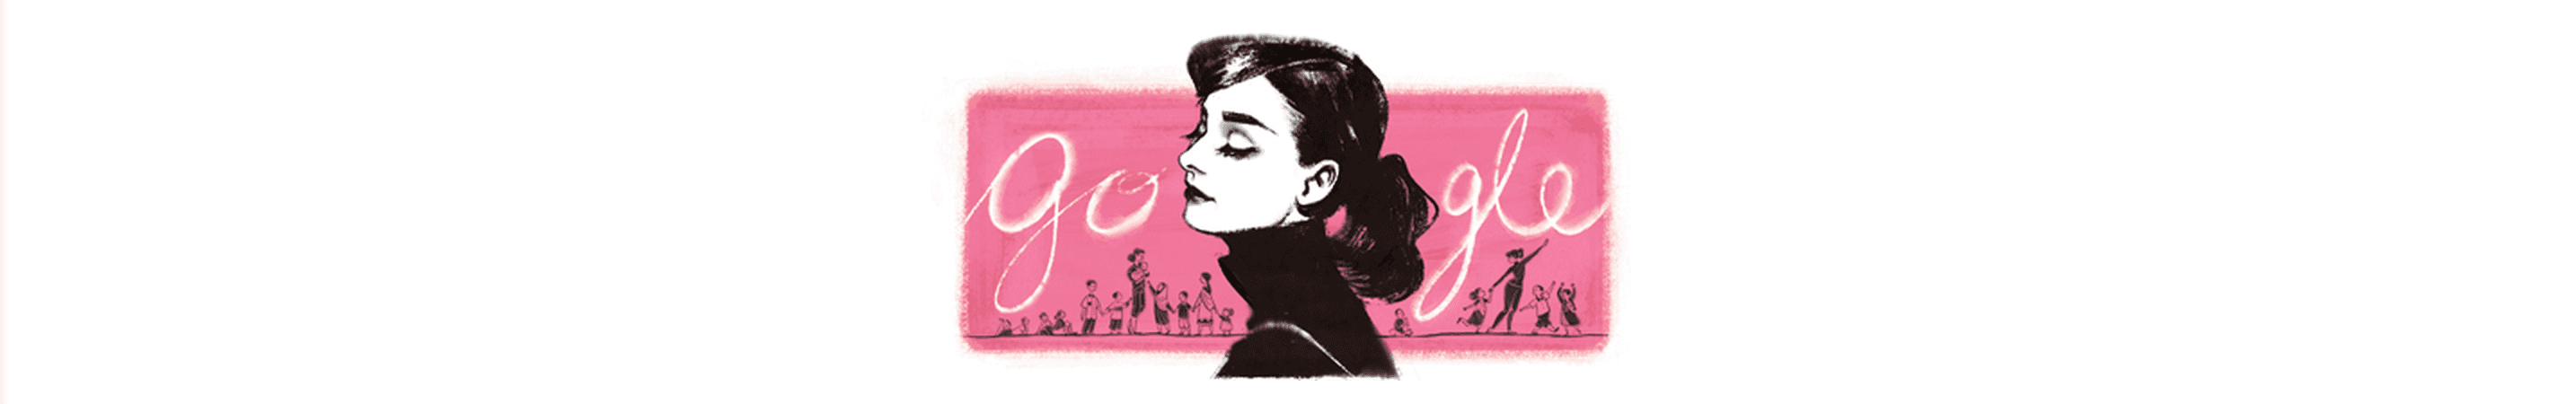 Unending Love, Audrey Hepburn's Favorite Poem by Rabindranath Tagore feature image